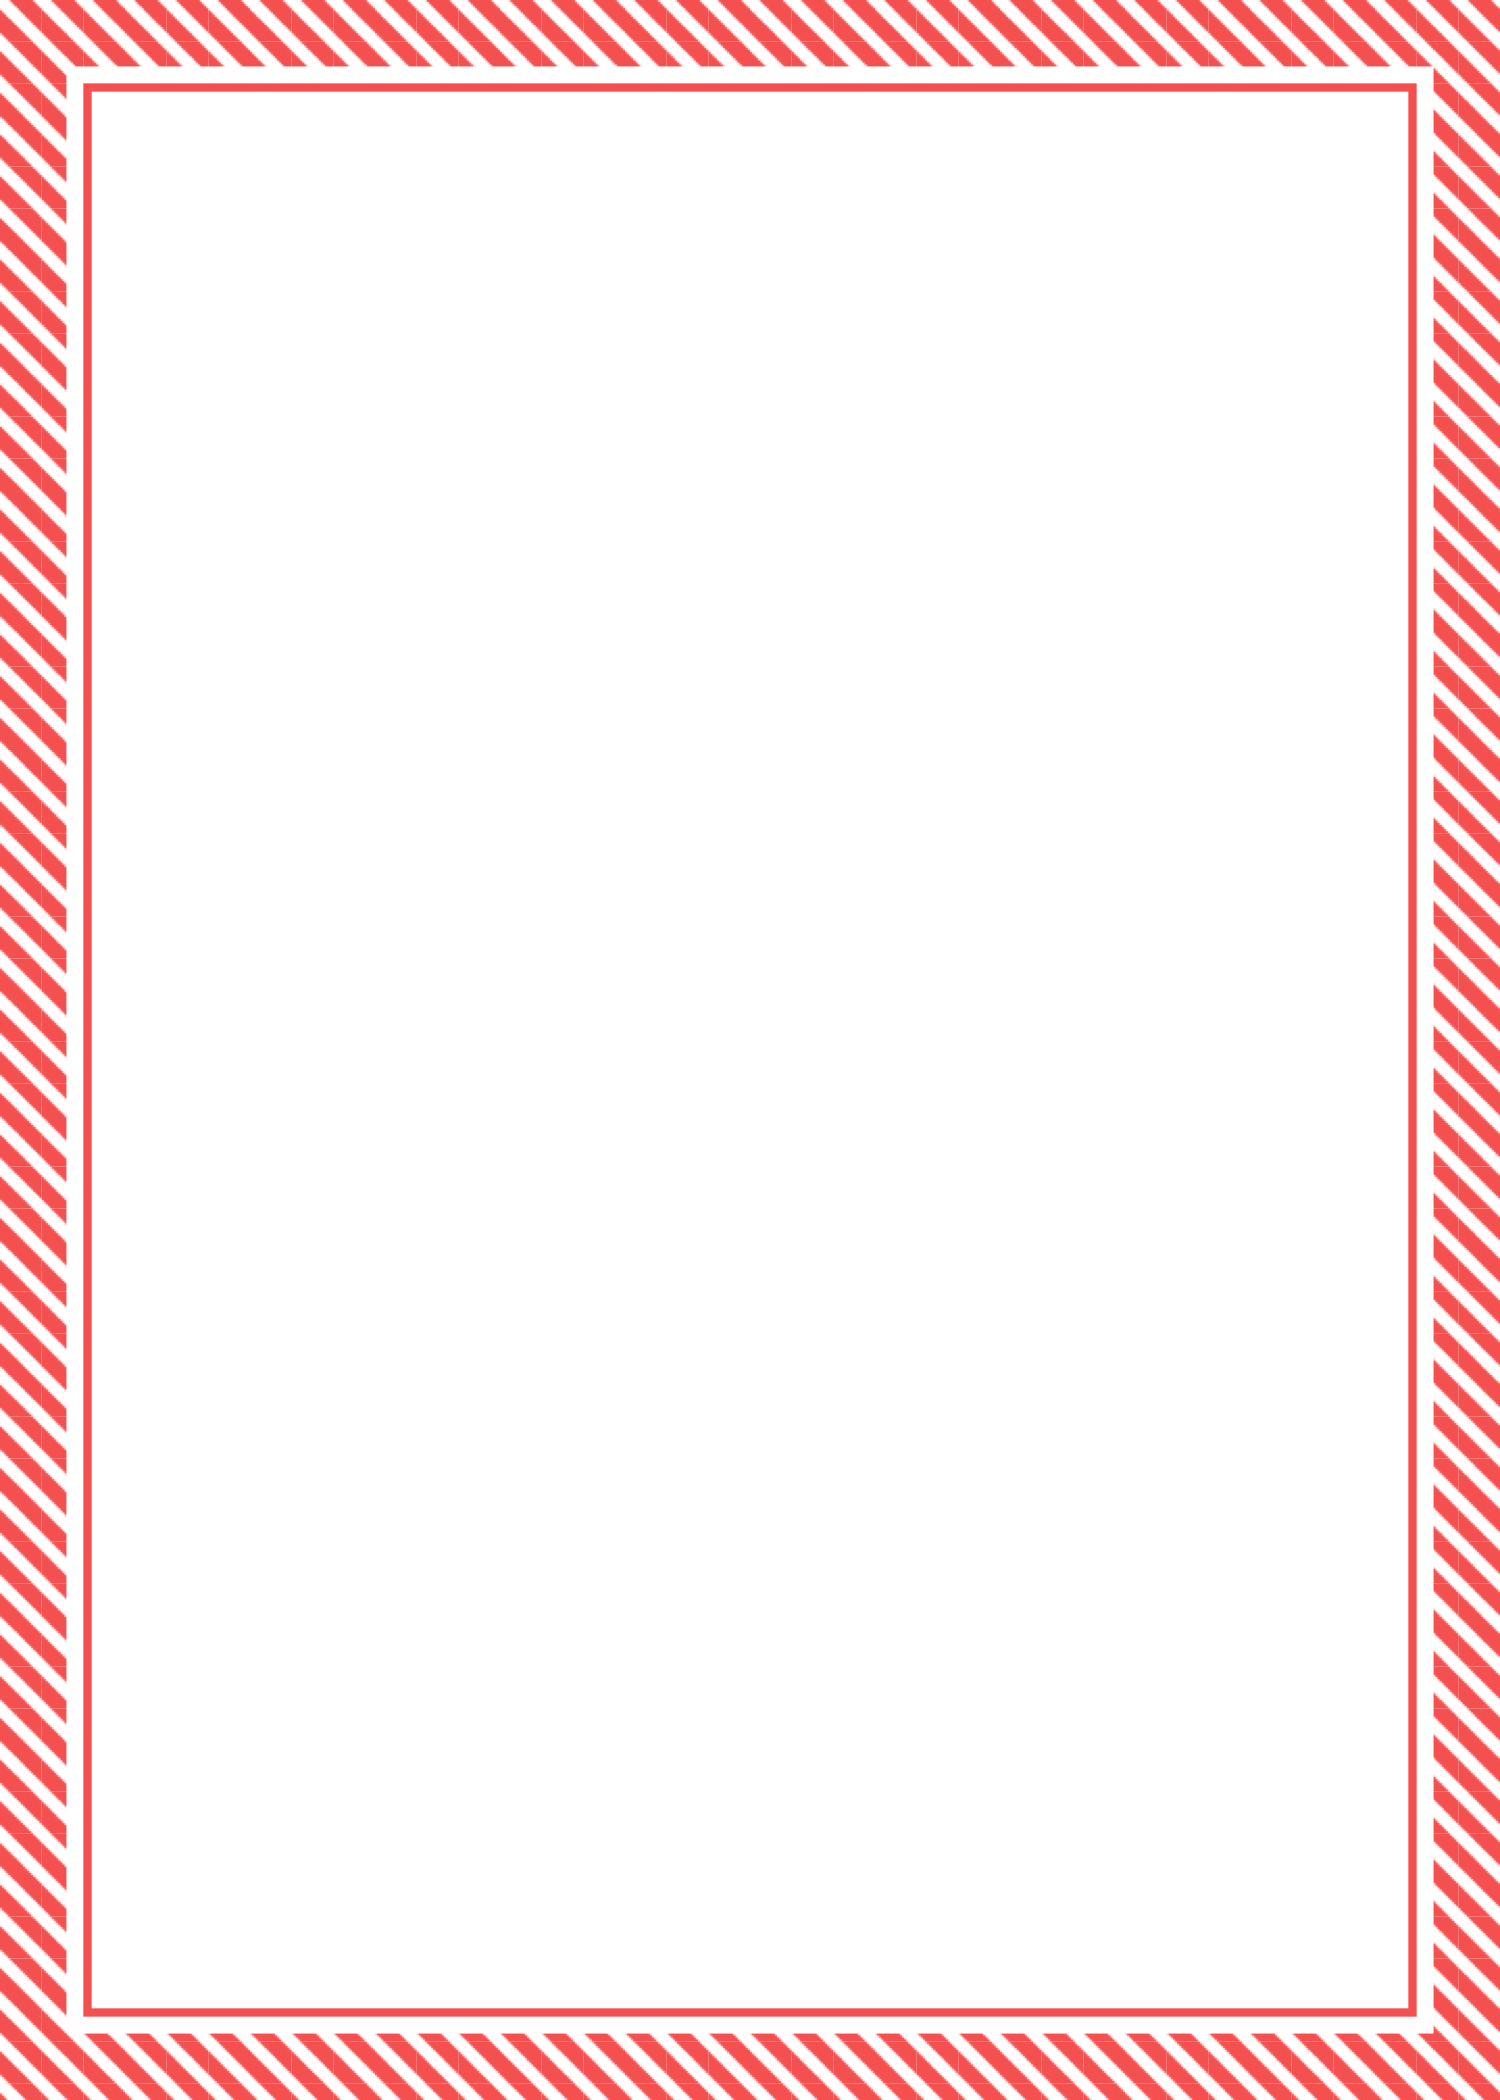 Red Candy Cane Stripe (Thick) Border (Free) – Christmas HQ